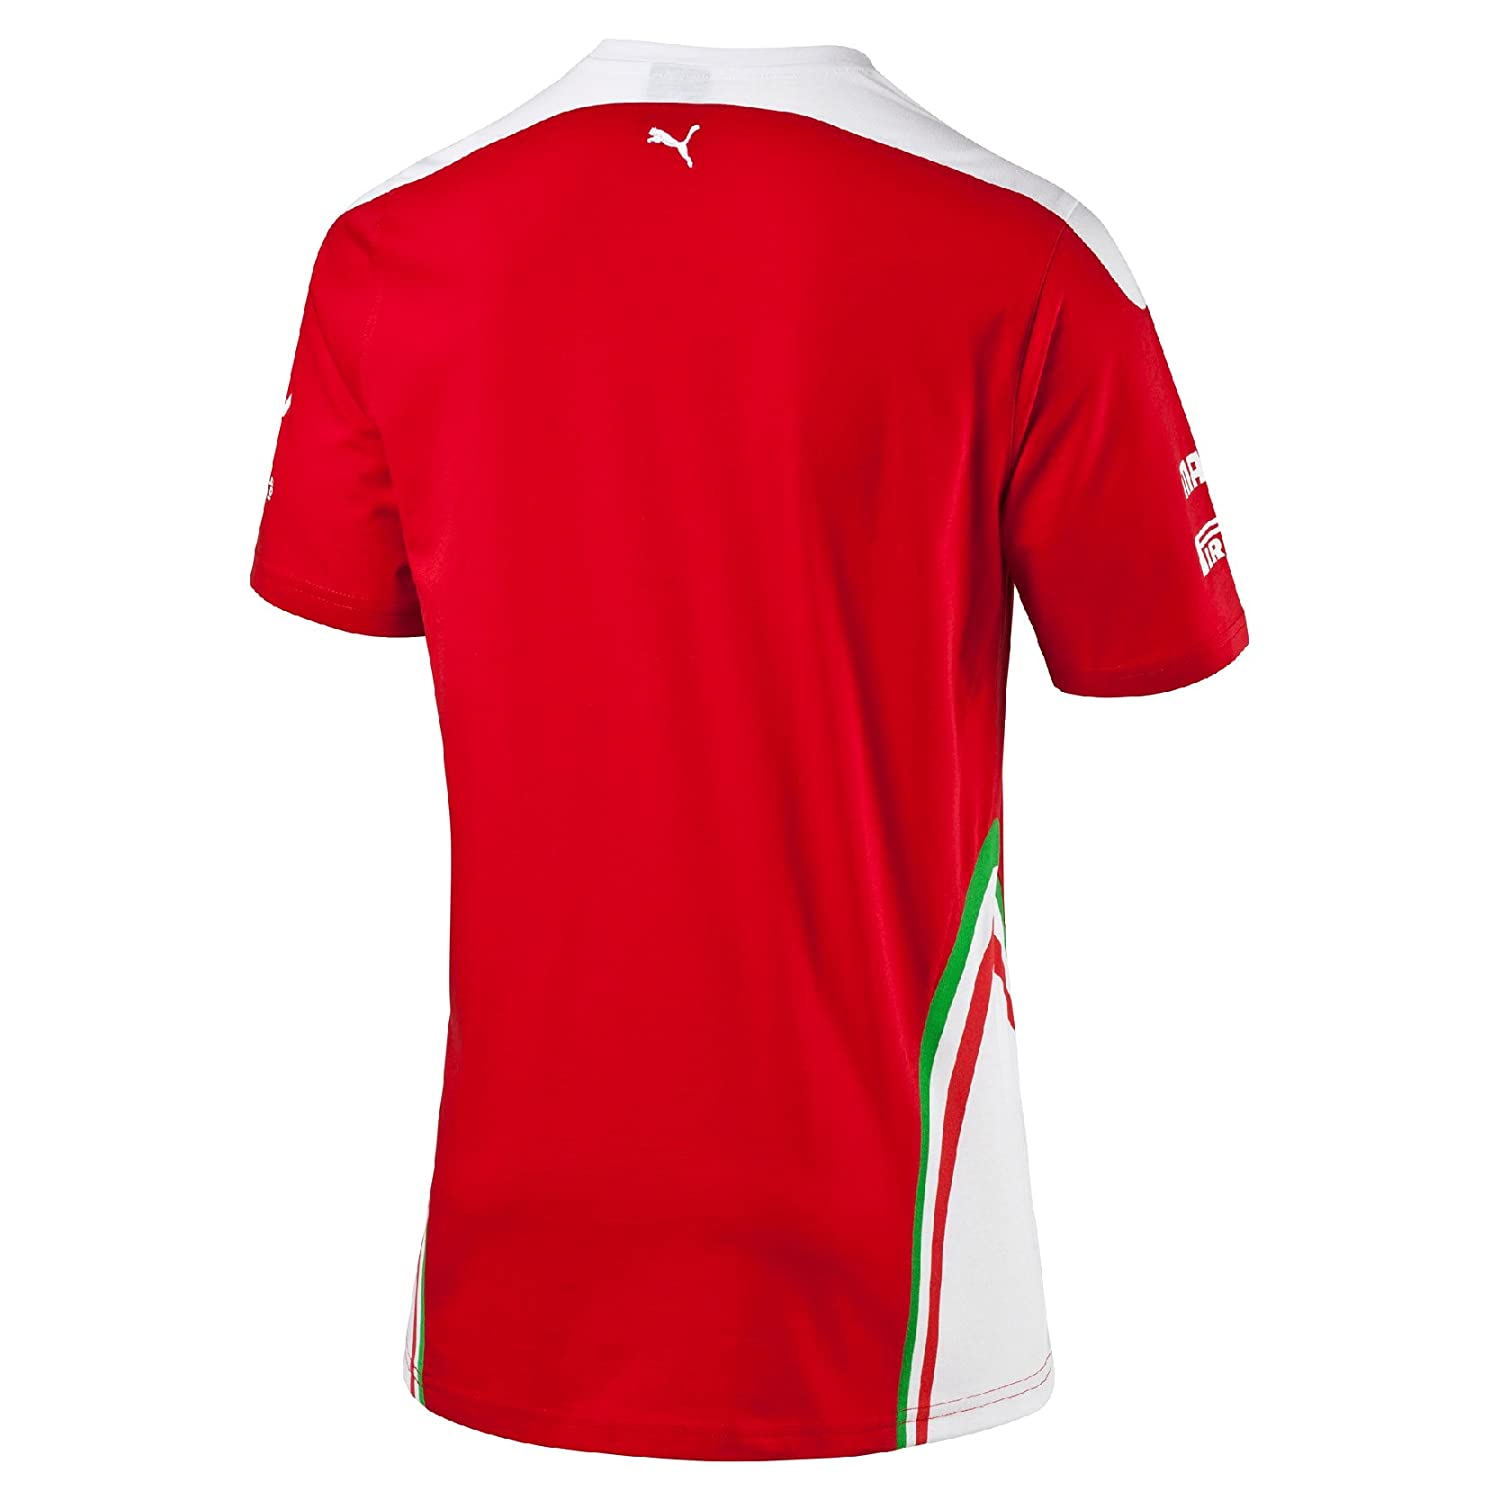 Amazon.com : Scuderia Ferrari 2016 Team T-Shirt (Medium) : Sports & Outdoors